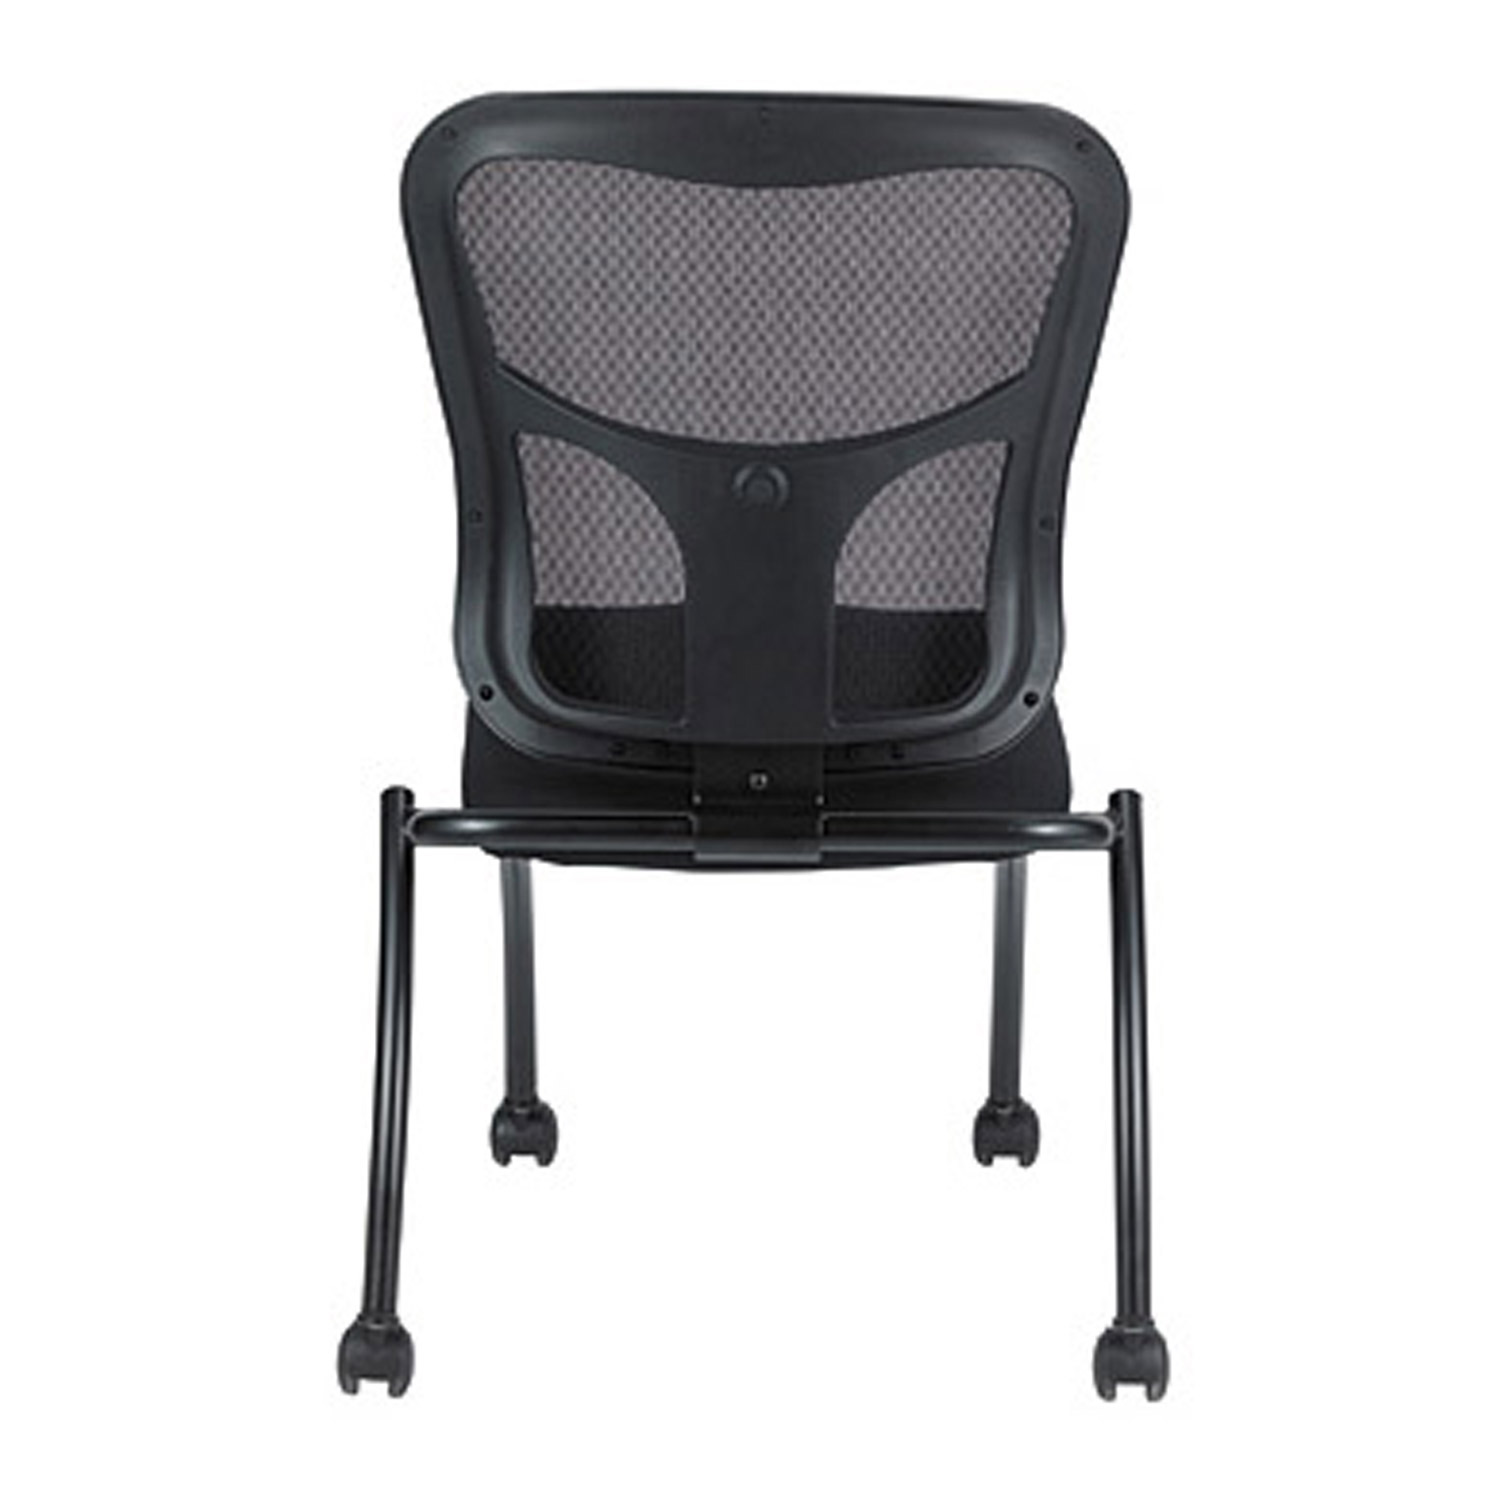 Foldable Office Chair Armless 0ffice Chairs Guest Chairs Office Furniture Chairs